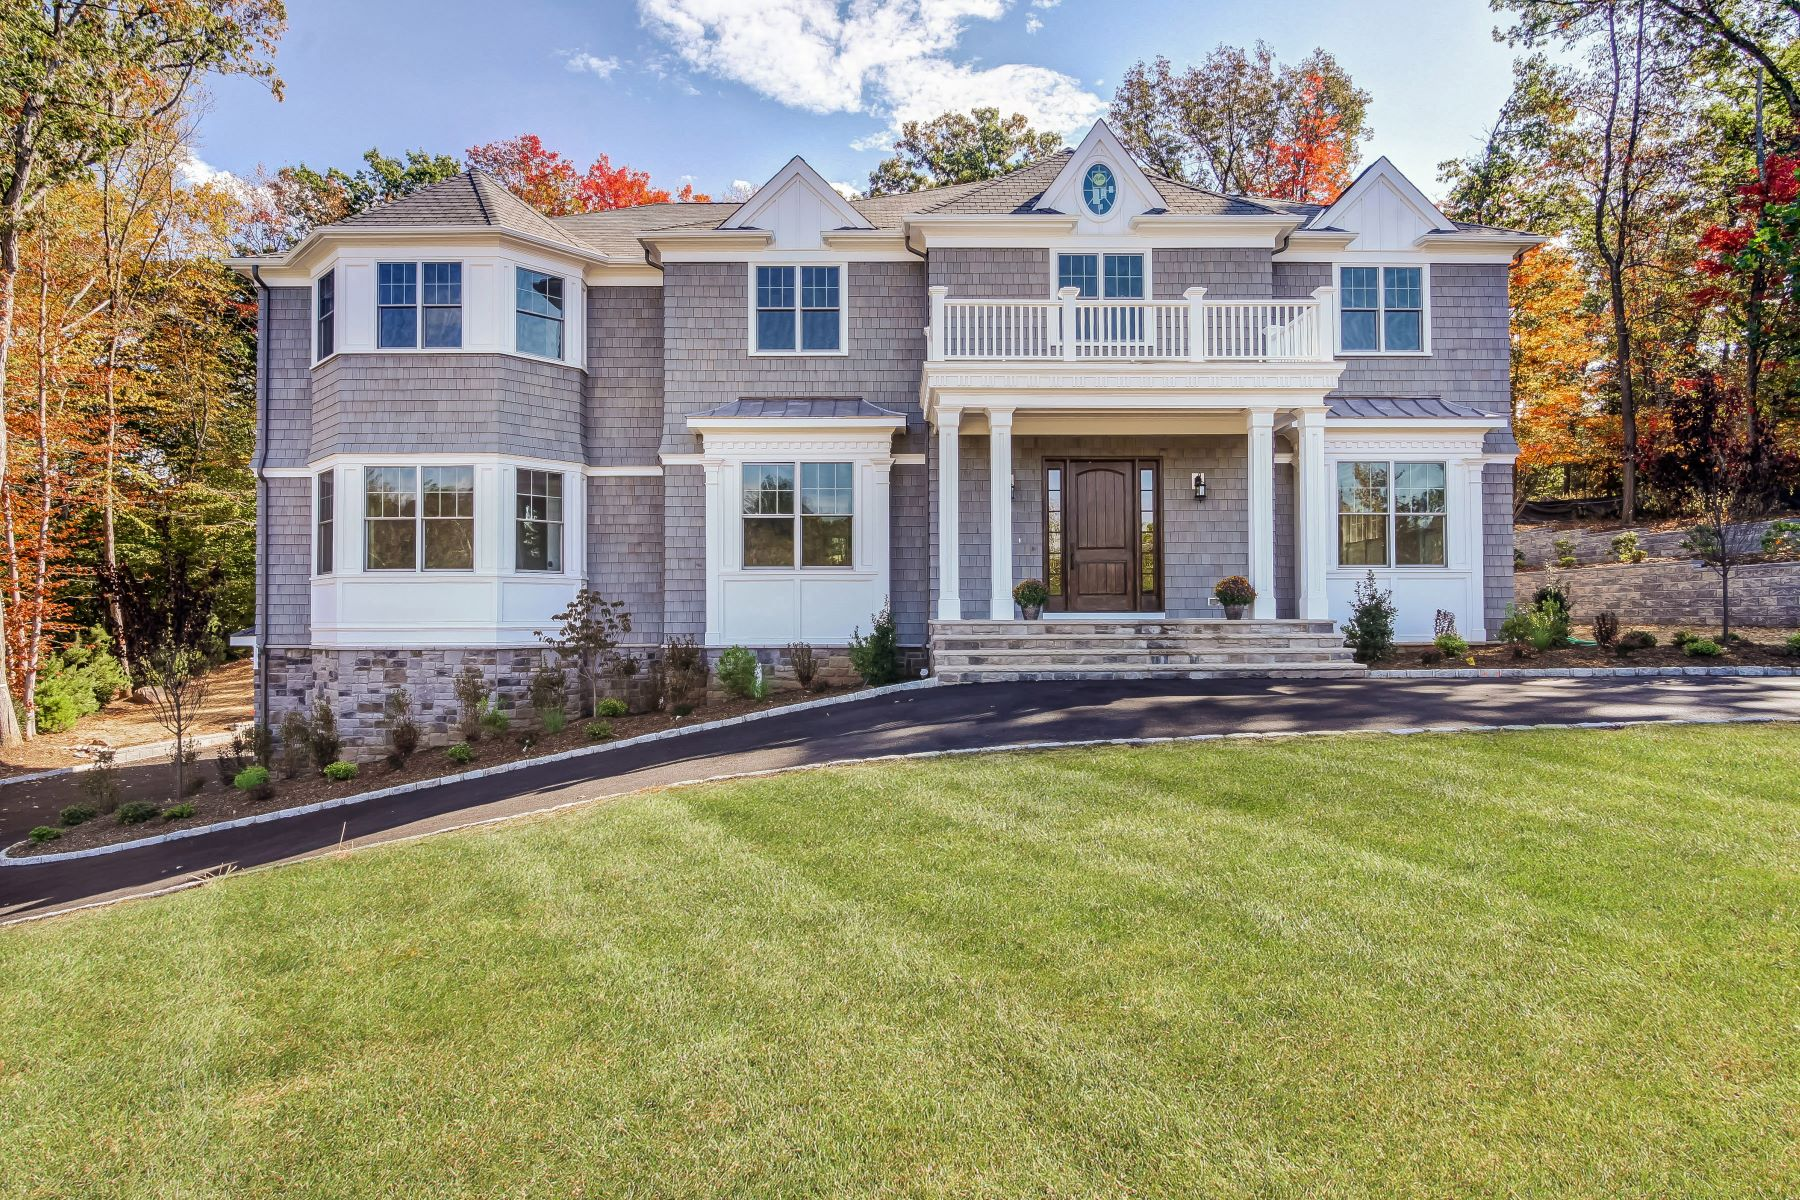 Single Family Home for Sale at New Contruction in Bel Air 46 Westmount Drive, Livingston, New Jersey 07039 United States